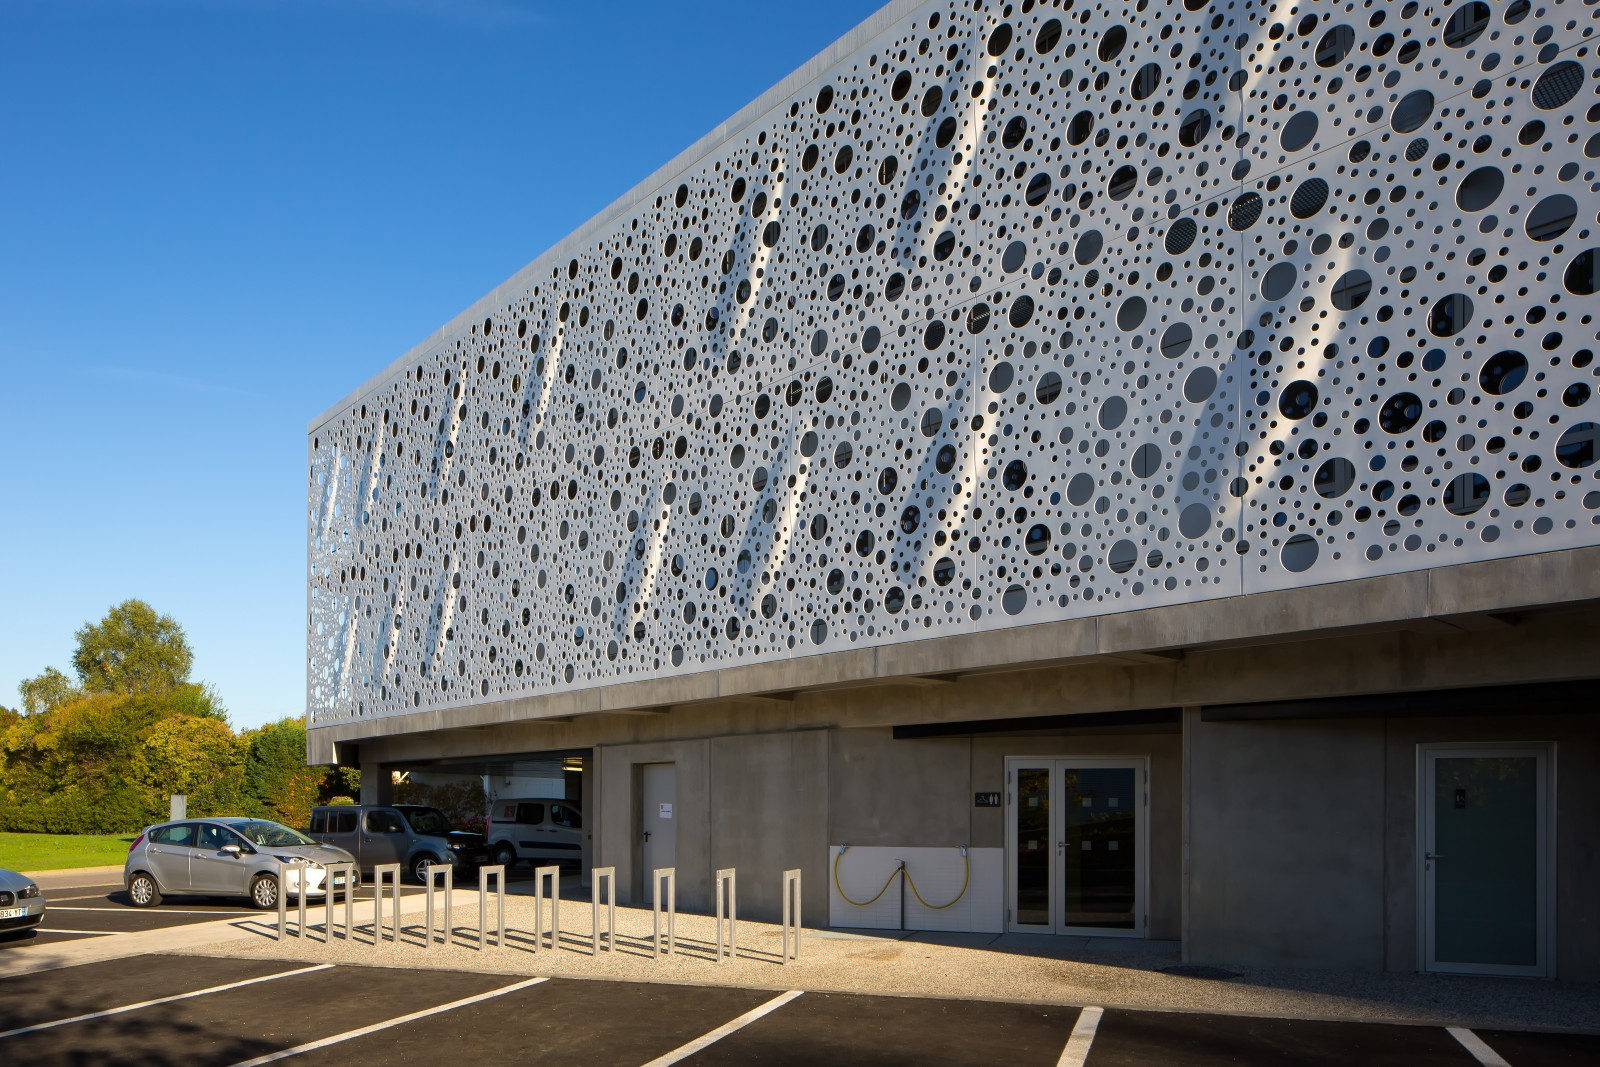 Exterior: perforated panels and floating by Gilles Bouchez